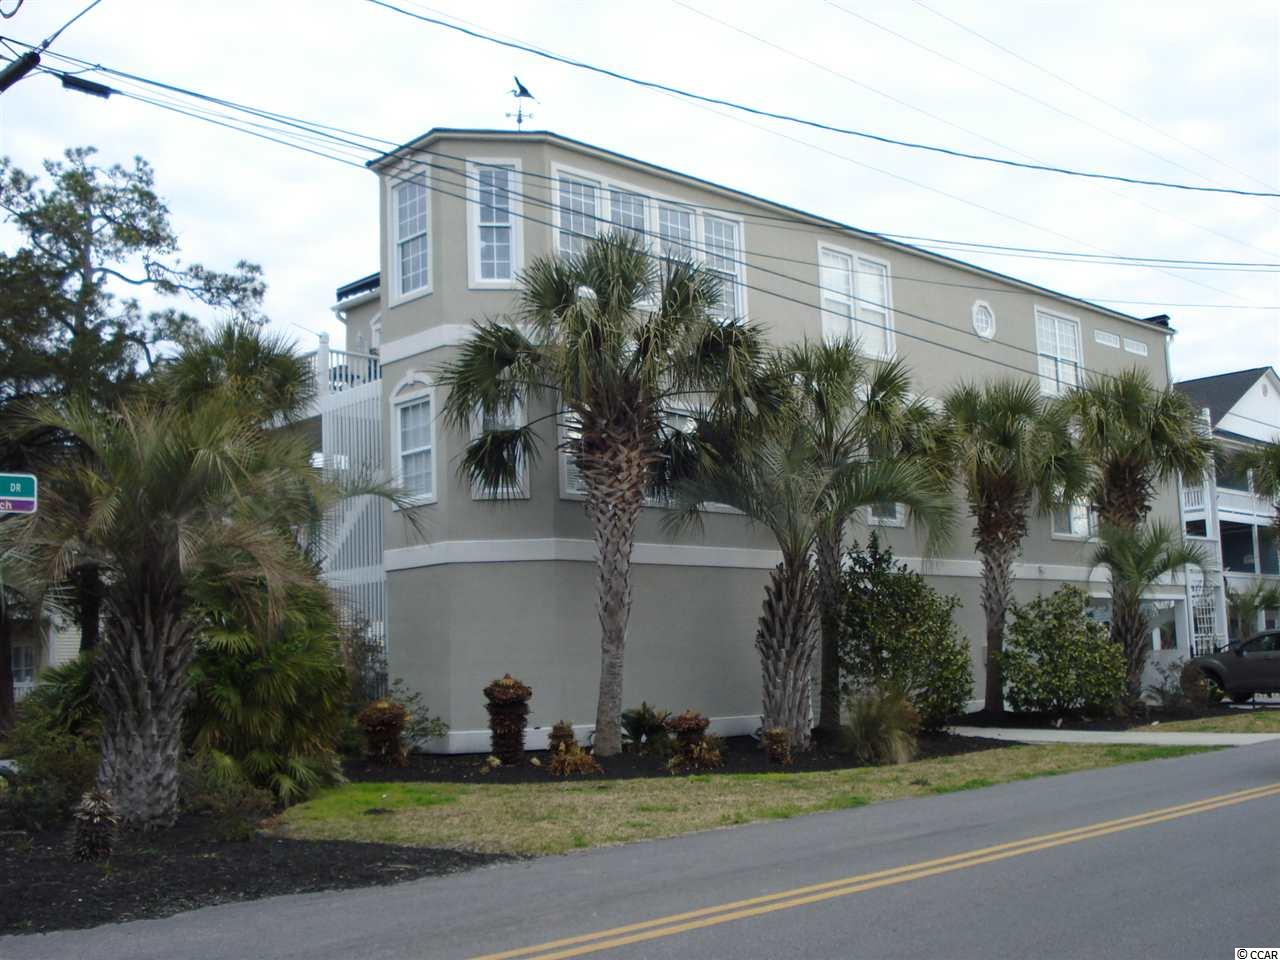 500 S 16th Ave. N, North Myrtle Beach, South Carolina